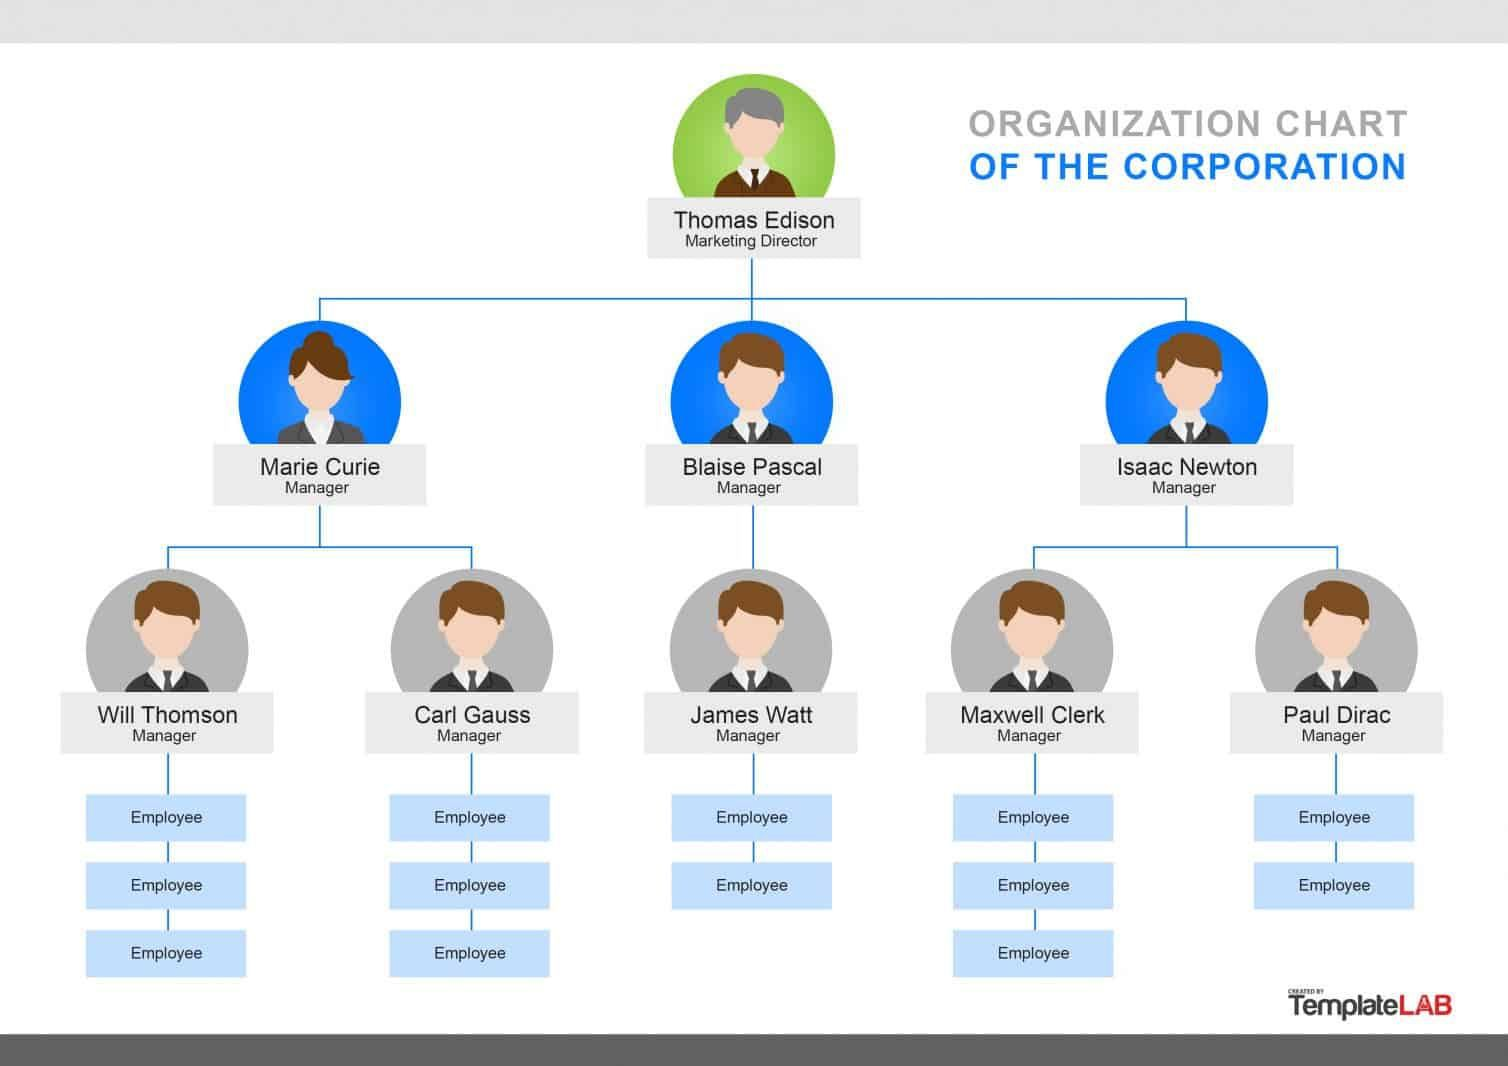 000 Shocking Hierarchy Organizational Chart Template Word Concept  Hierarchical Organization -Full